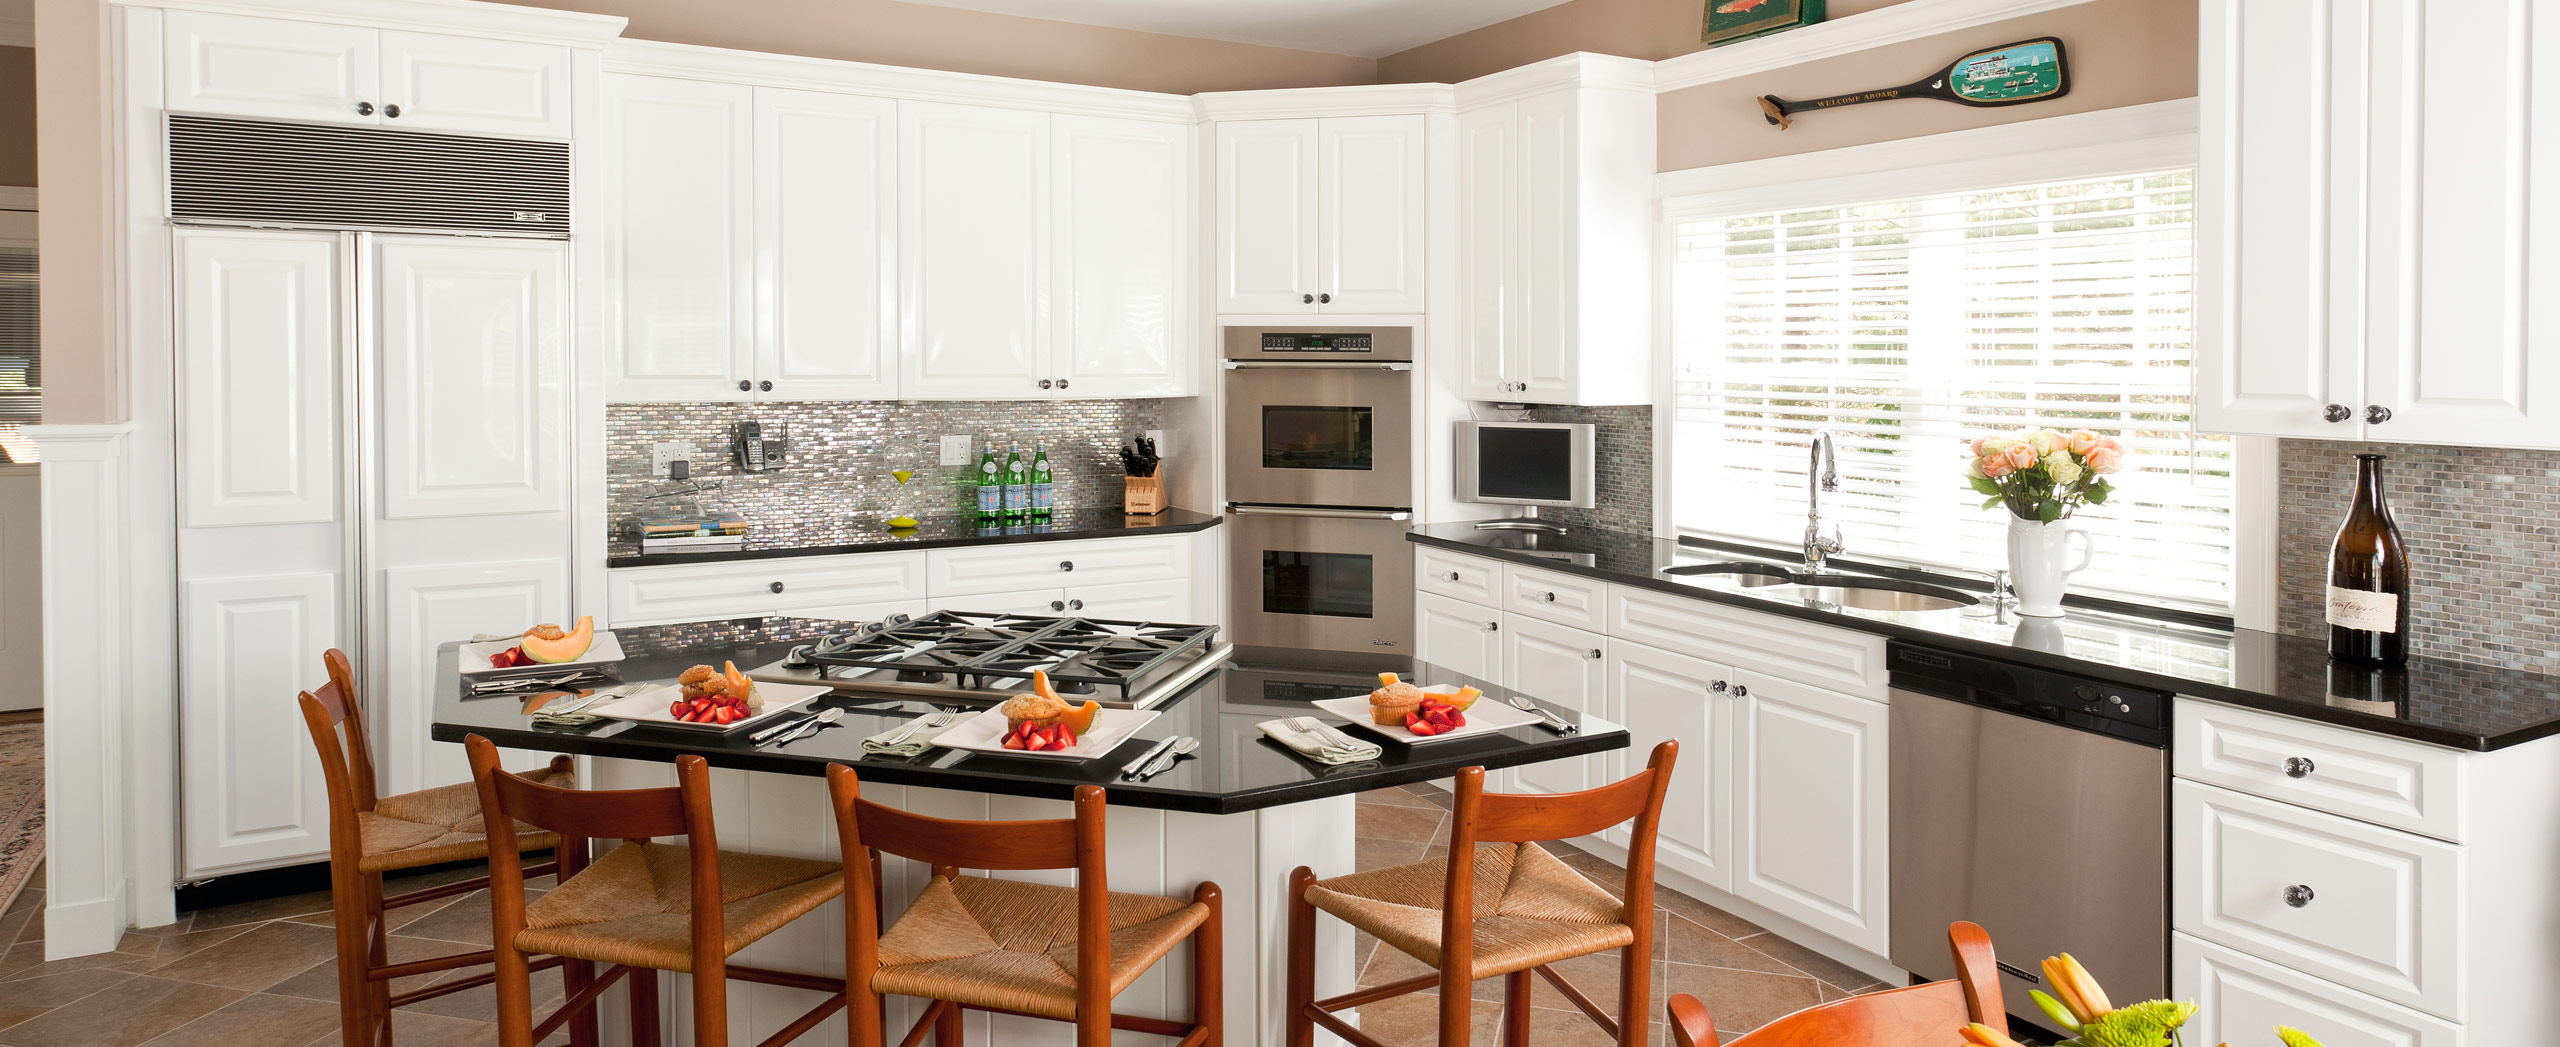 High end kitchen remodel in Osterville